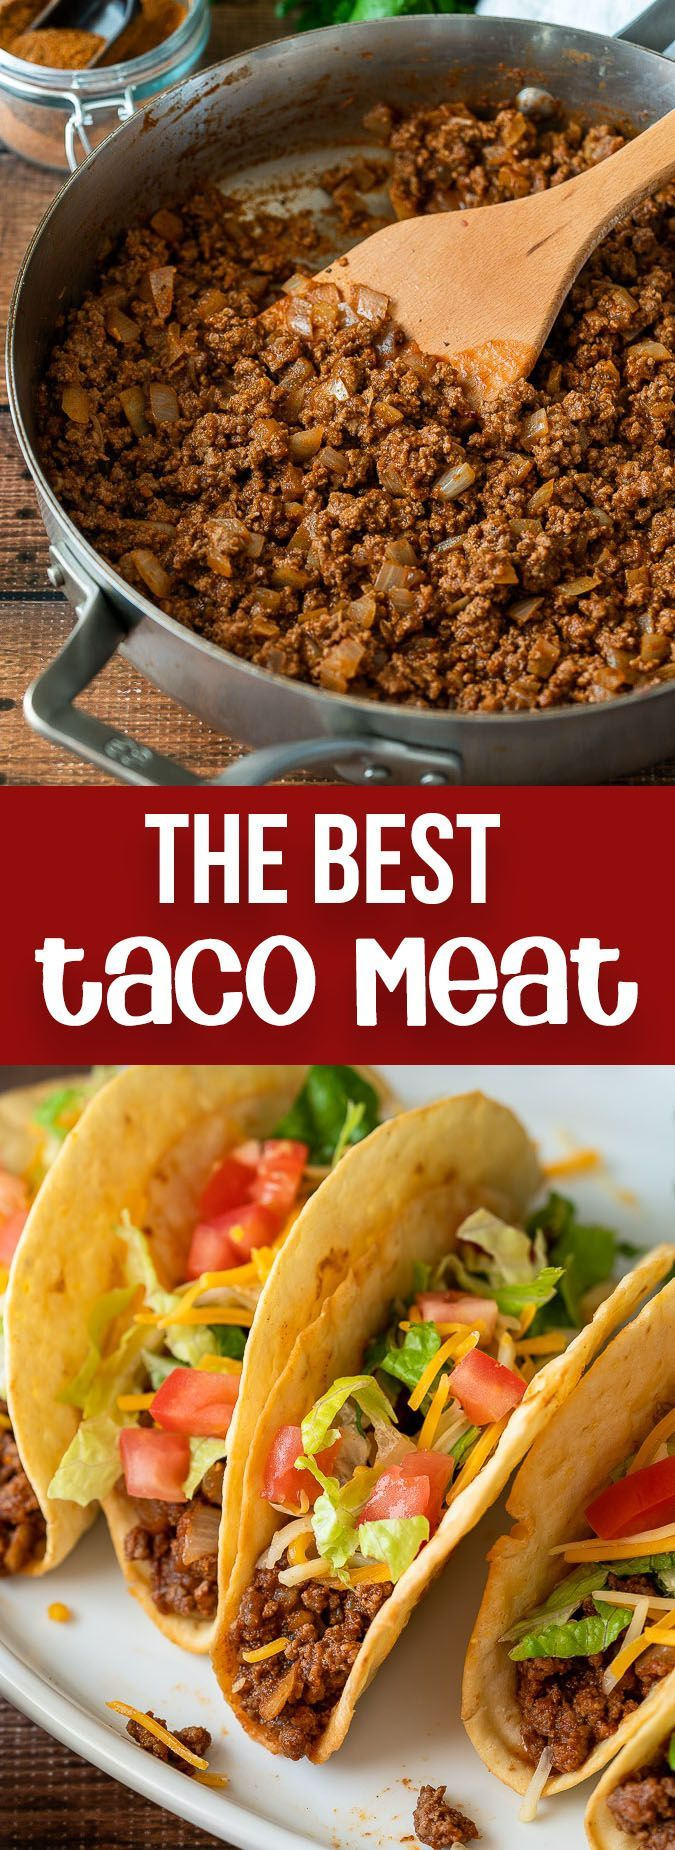 Ground Beef Tacos Recipe In 2020 Taco Recipes Ground Beef Beef Tacos Recipes Ground Beef Tacos